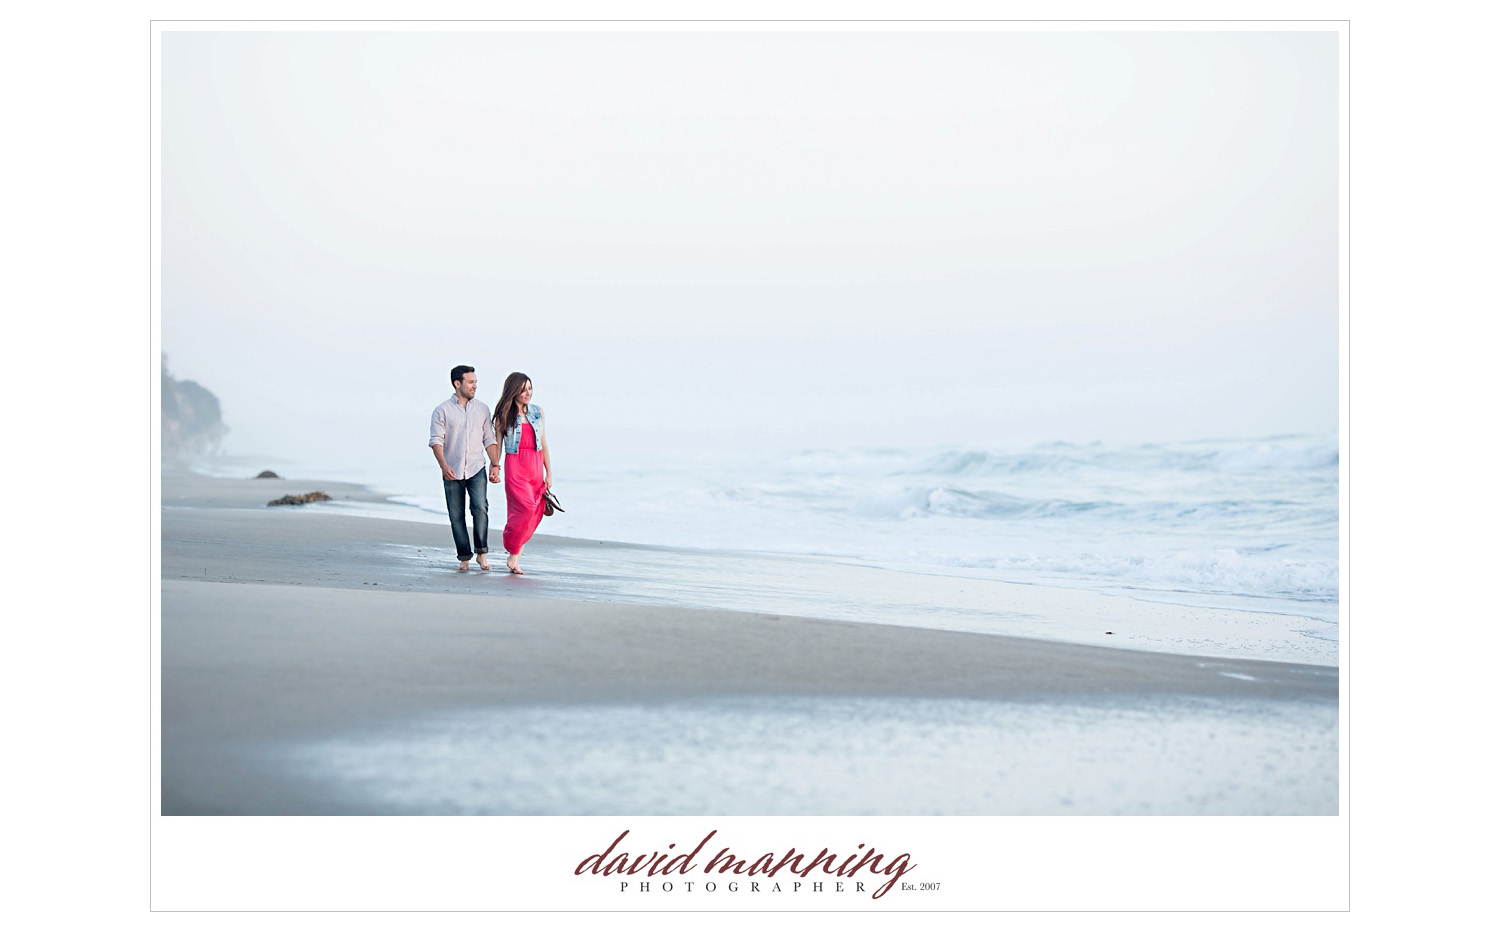 Encinitas-Engagement-Photos-San-Diego-David-Manning_0015.jpg